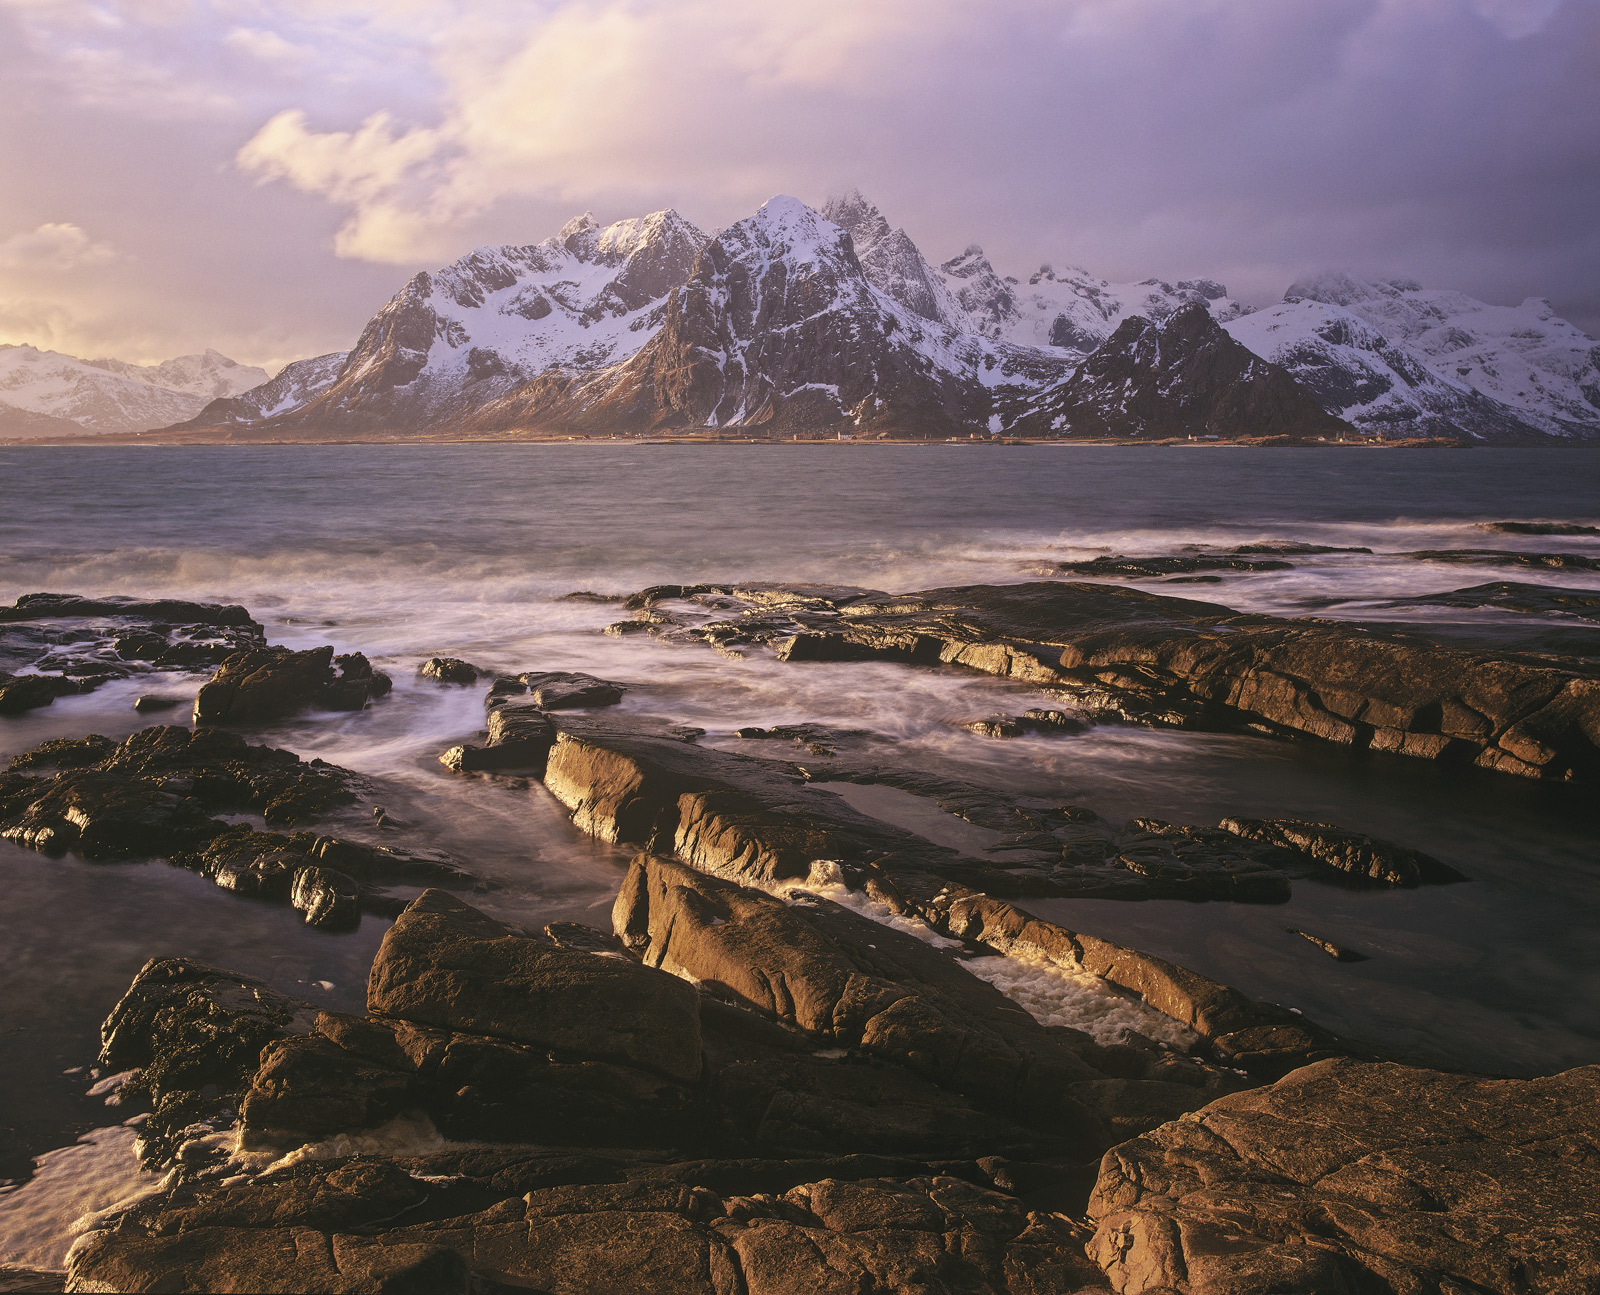 Warm evening sunlight belies the chilly conditions beside the foreshore that gazes out towards the stunning serrated peaks of...